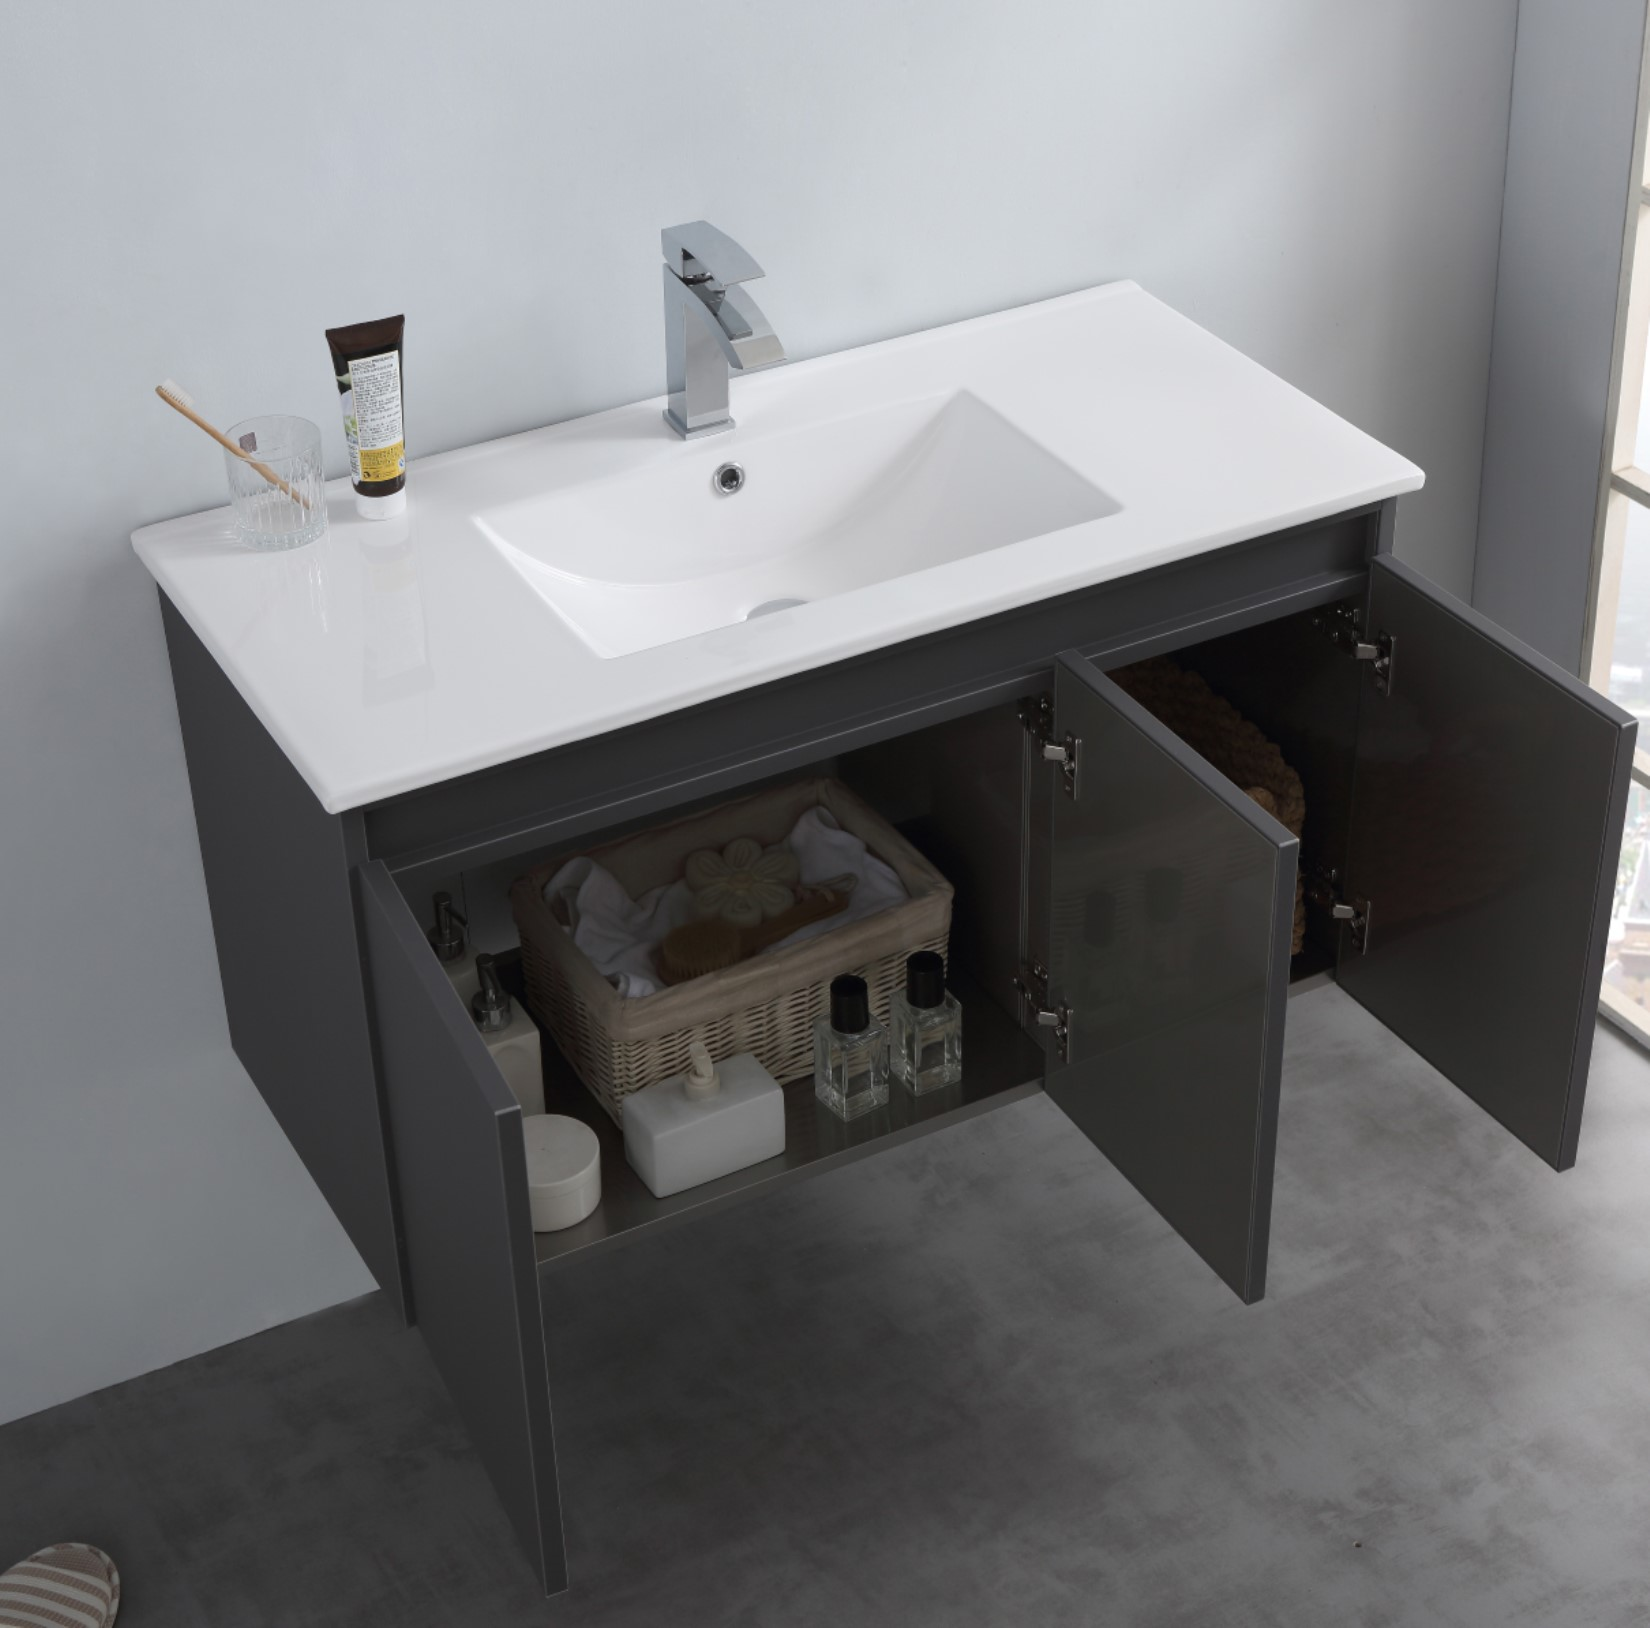 top products vanity more storage a bathroom than eden just without cabinet sinks wall vanities cabinets and mount